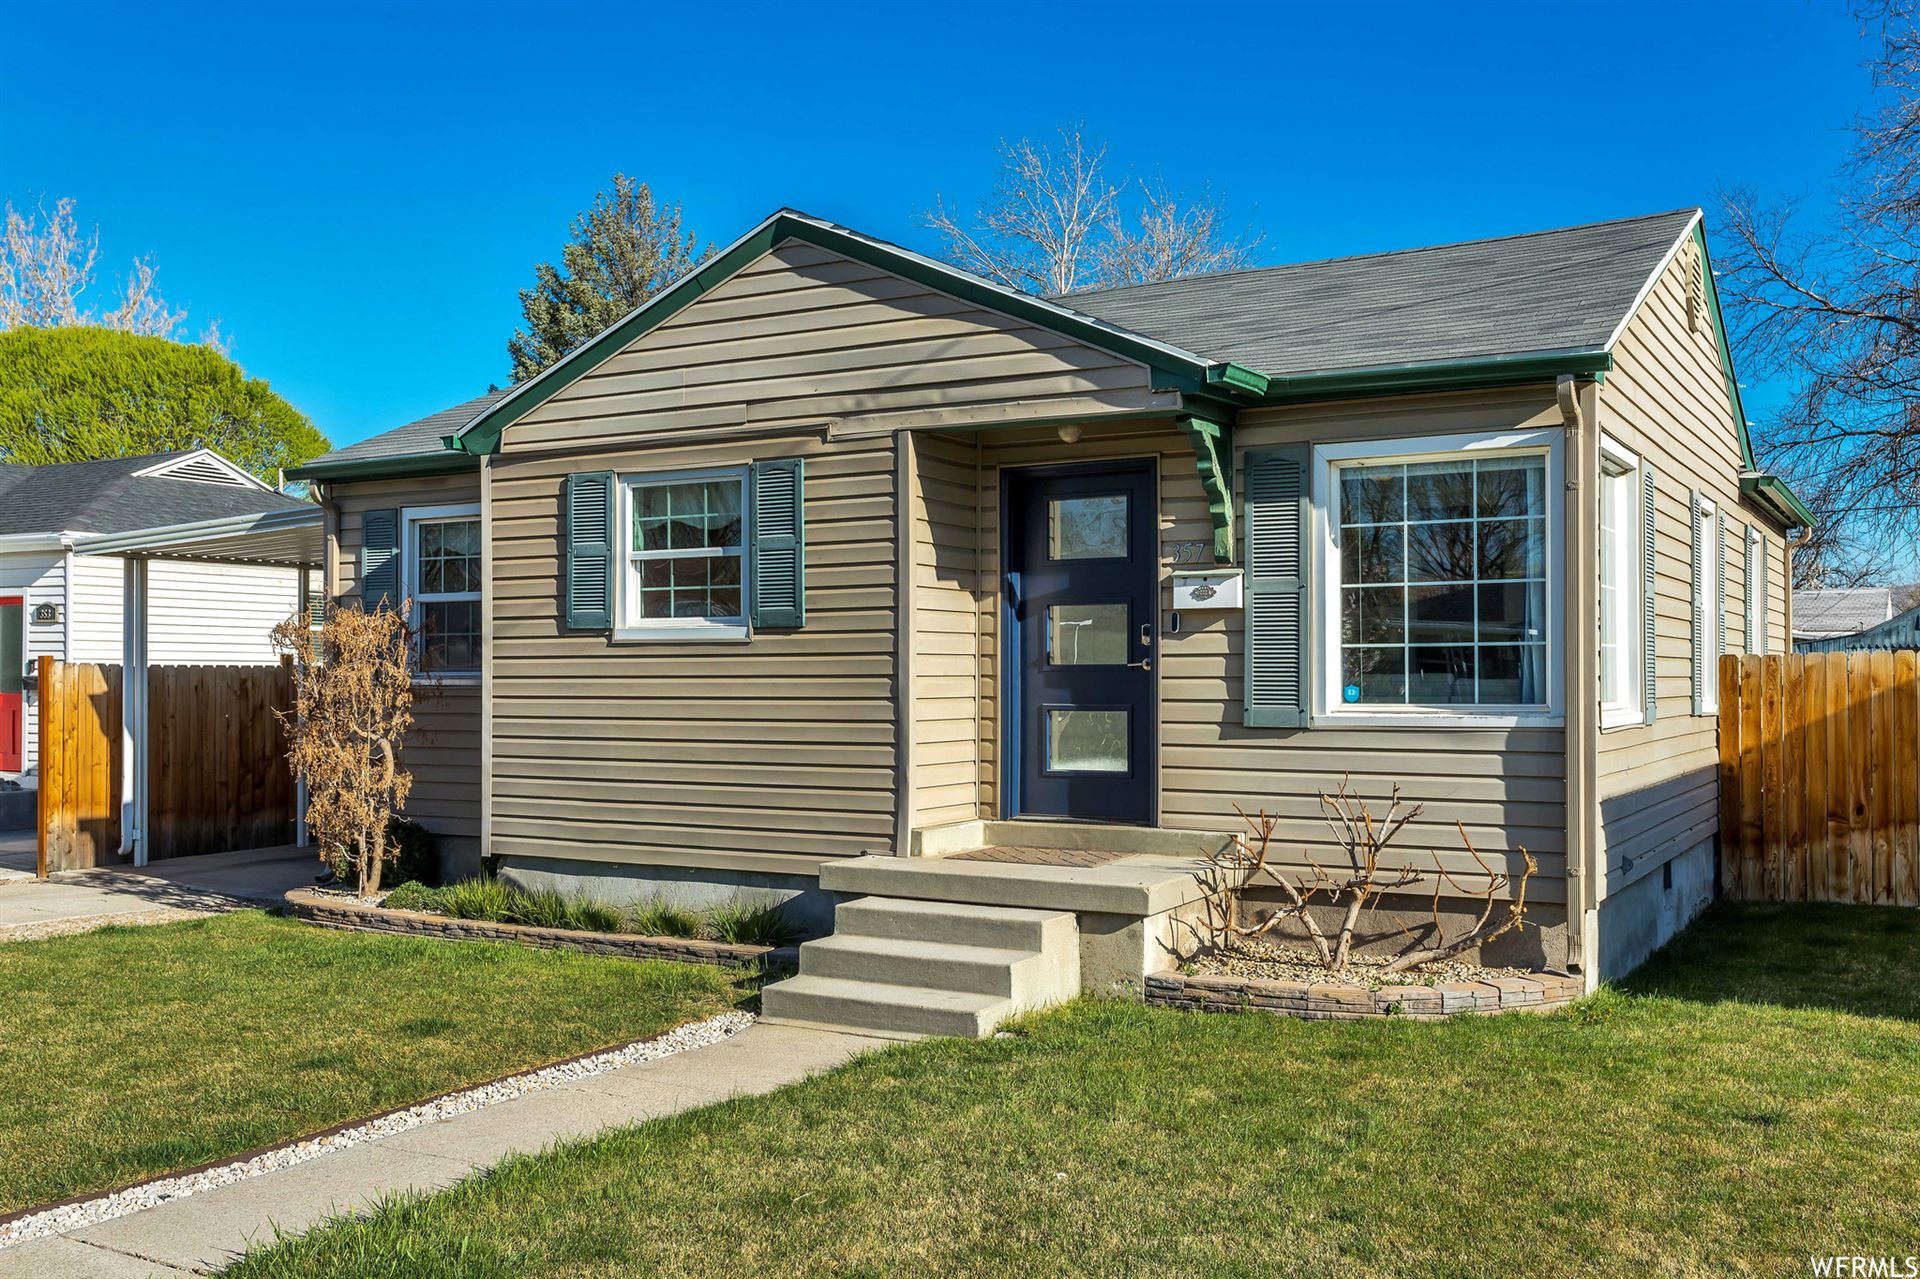 Photo of 357 E GREGSON AVE, Salt Lake City, UT 84115 (MLS # 1734808)